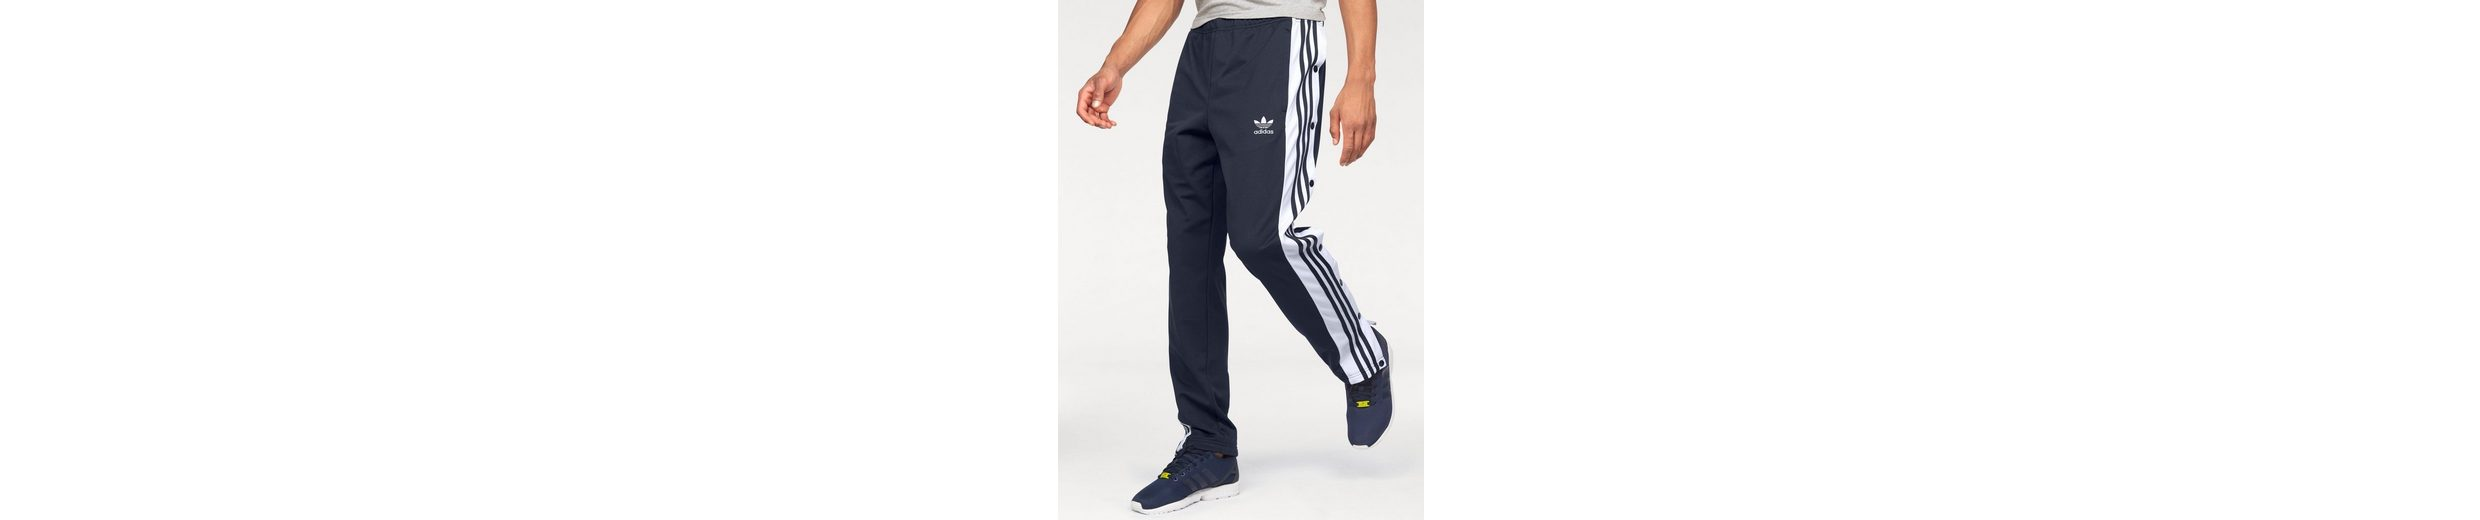 adidas Originals Trainingshose ADIBREAK TP, Beine seitlich zu 枚ffnen